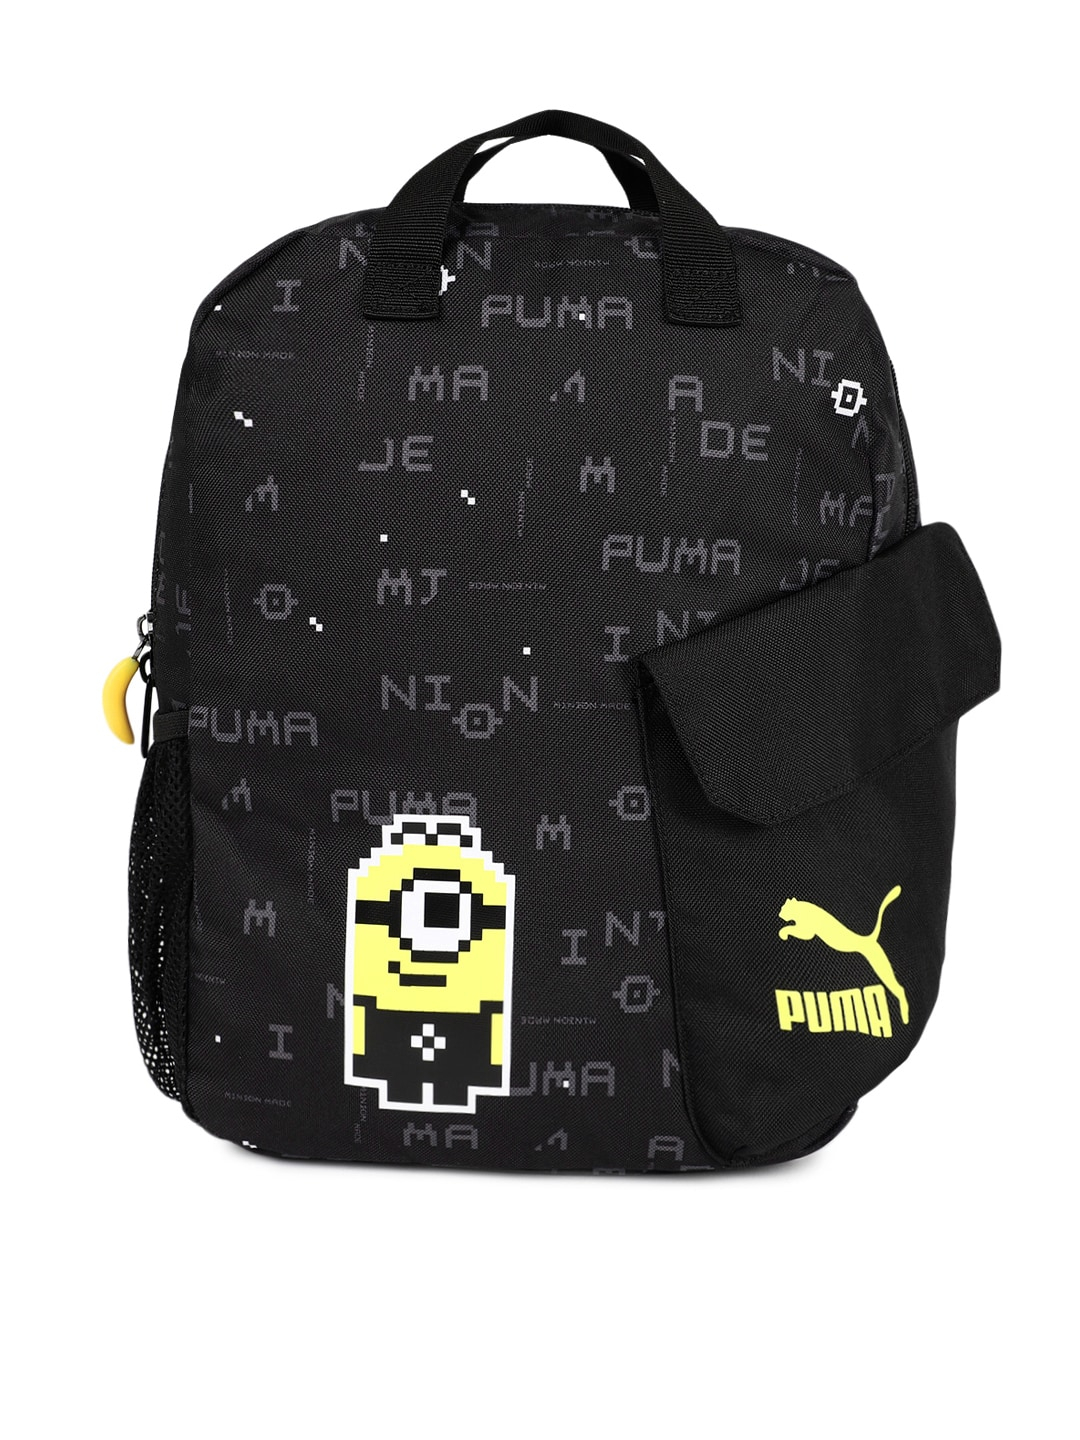 Puma Backpack Boys Girls - Buy Puma Backpack Boys Girls online in India a1c29fed37734